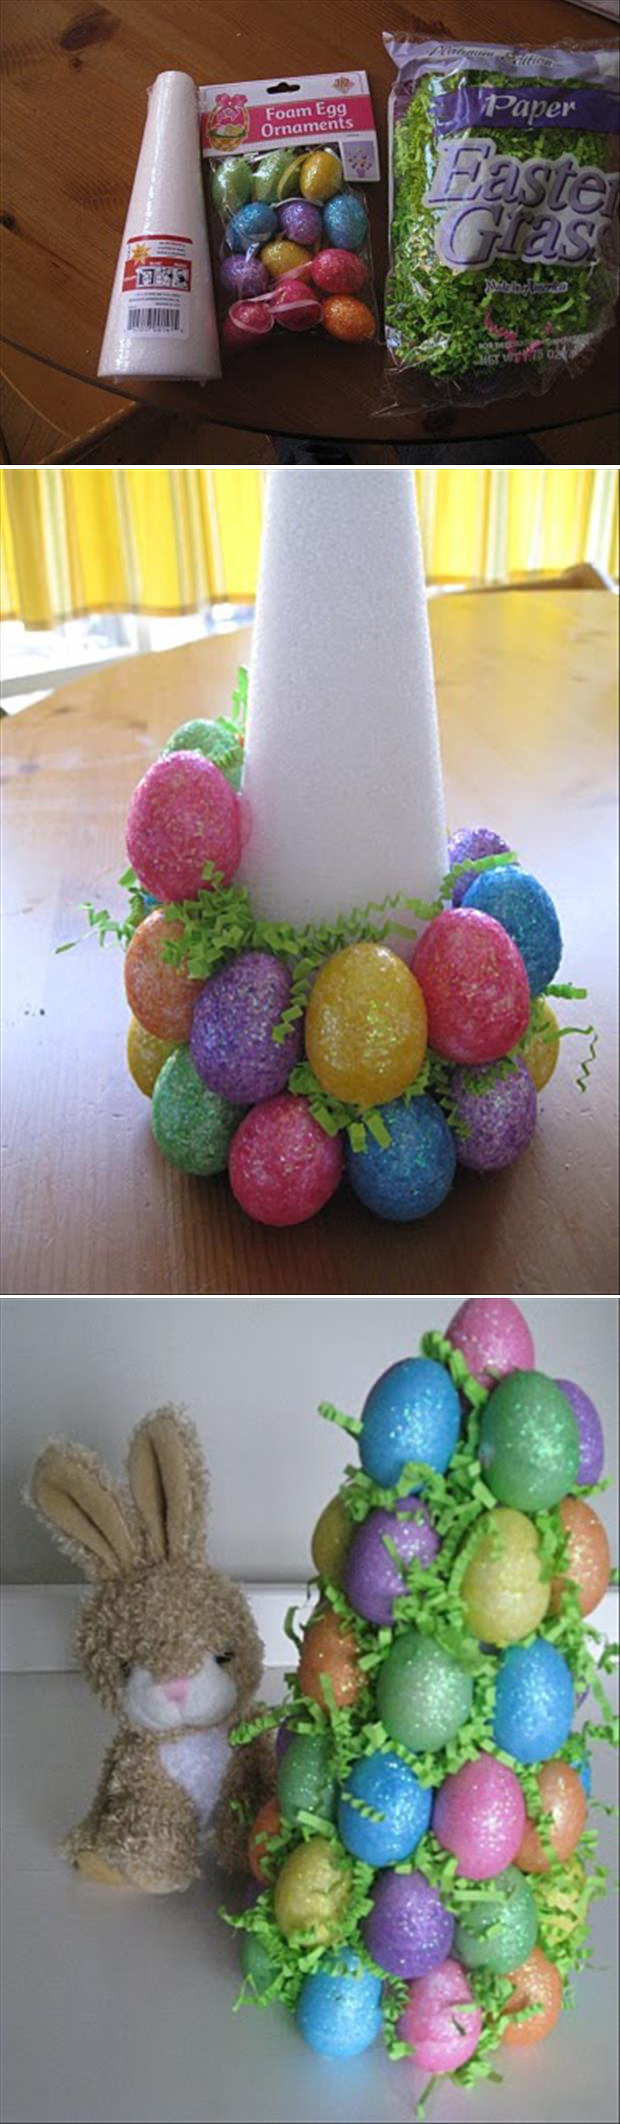 Fun Easter Craft Ideas 32 Pics